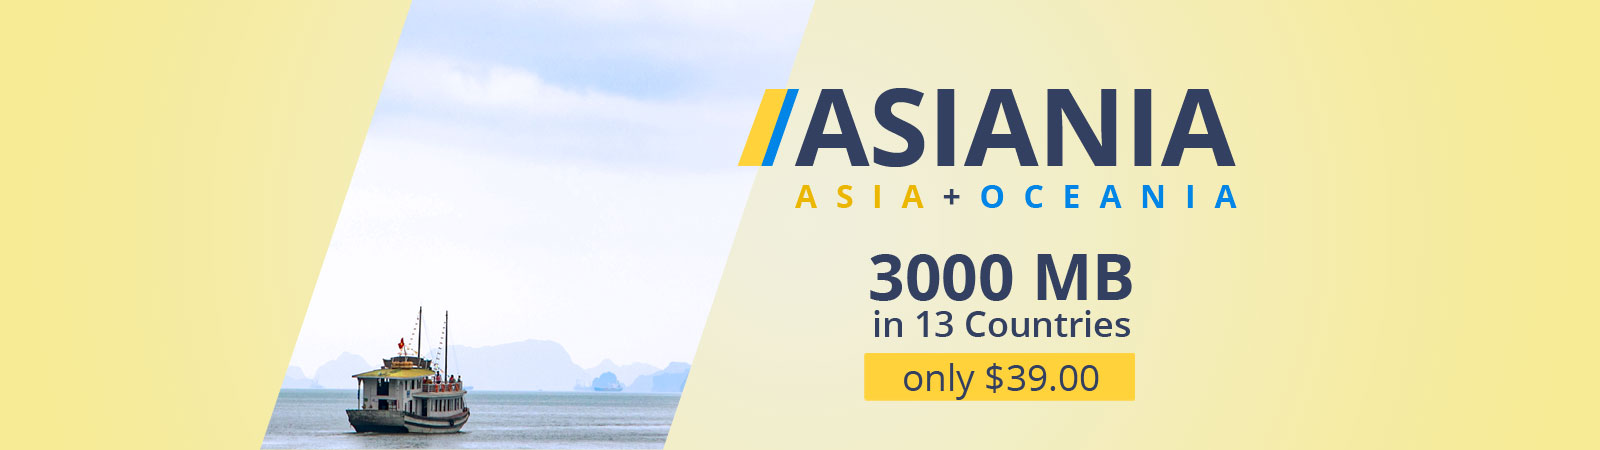 Asiania data plan (Asia + Oceania)